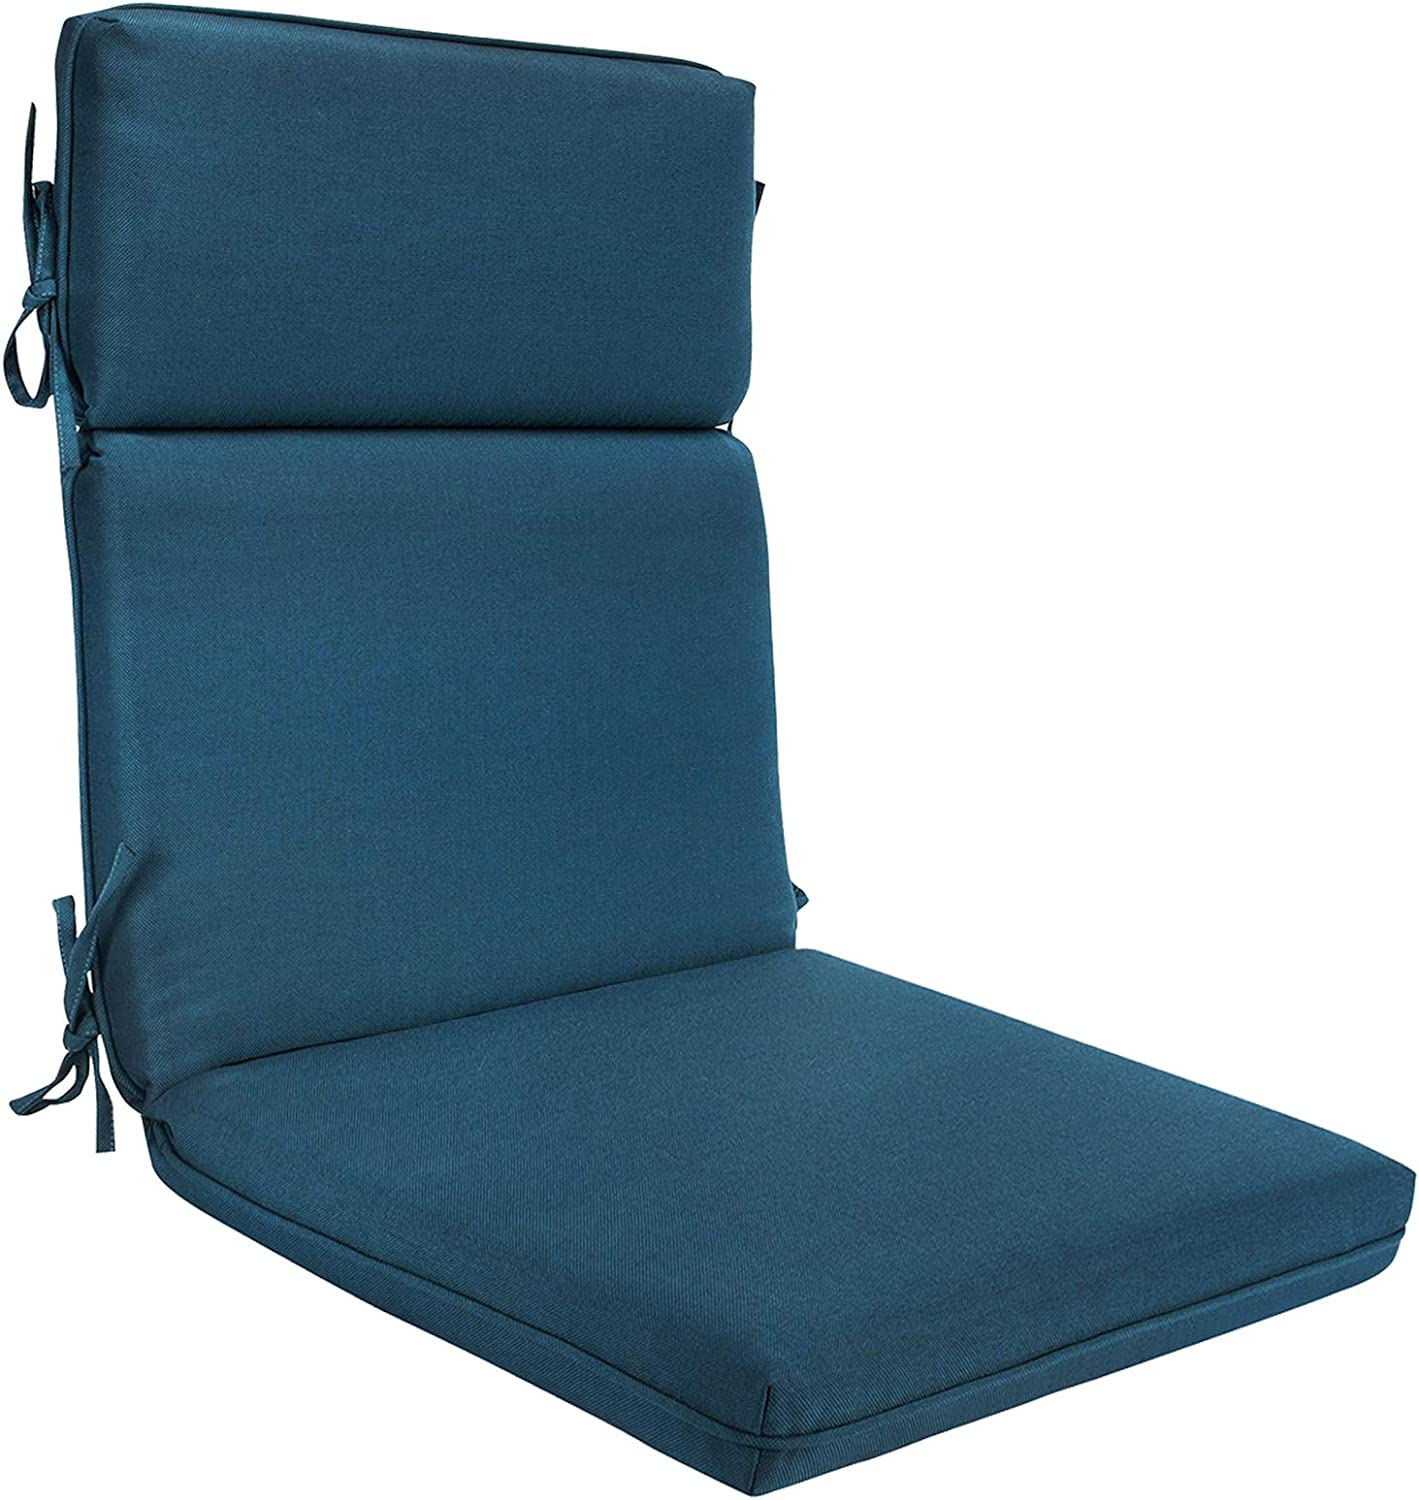 BOSSIMA Outdoor Indoor High Back Chair Cushions Comfort Replacement Patio Seating Cushions Teal Blue